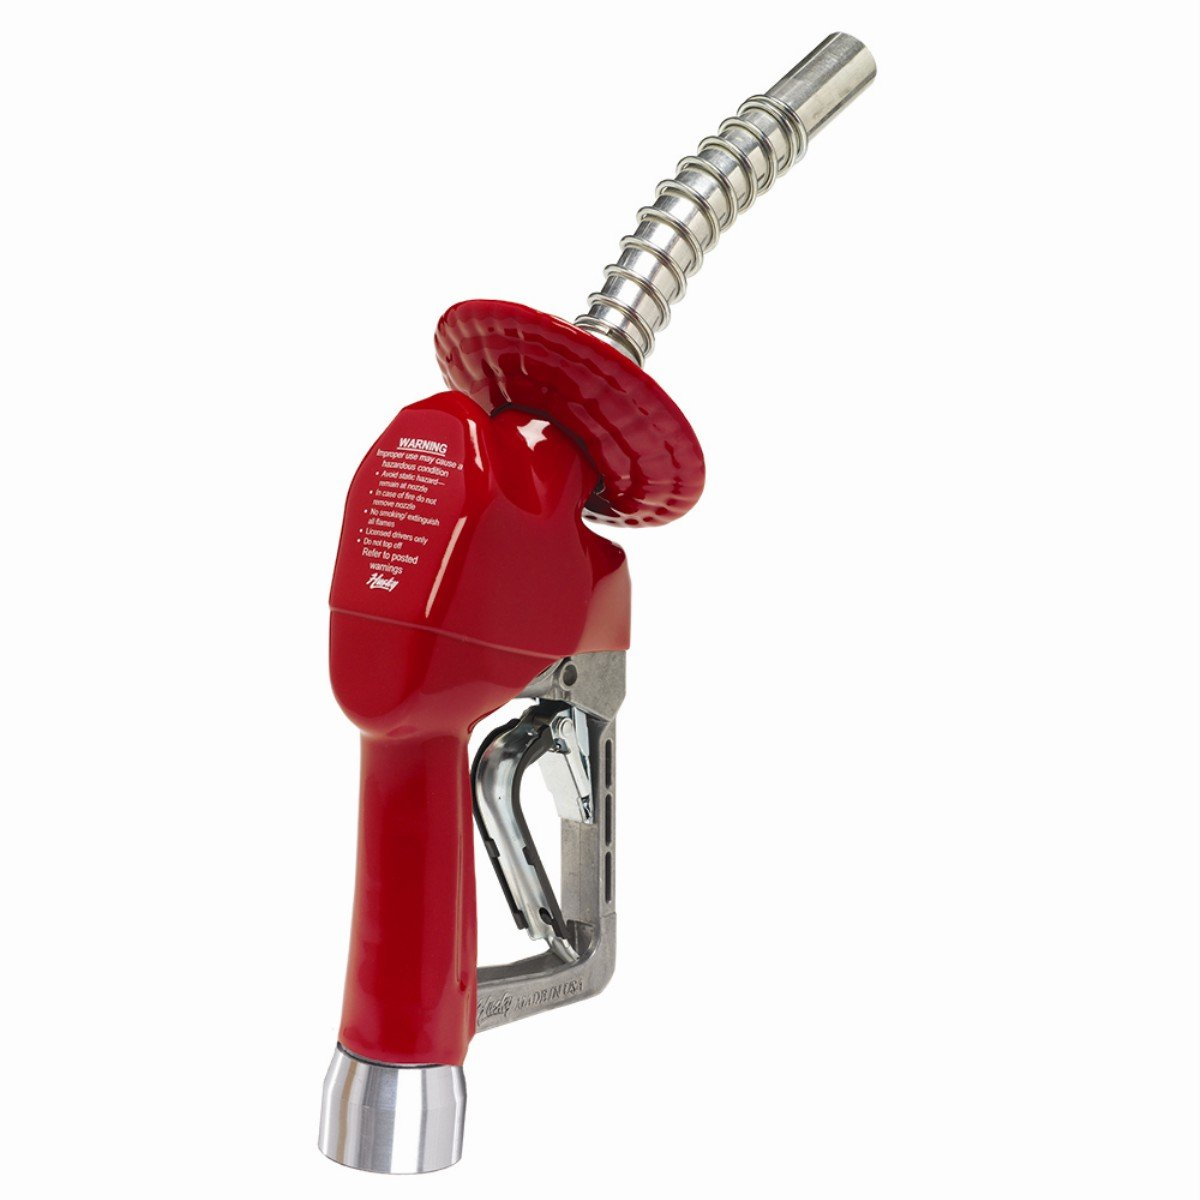 Husky 159560-02 XS Pressure Activated MFM Light Duty Diesel Nozzle with Three Notch Hold Open Clip and no. 1808 Waffle Splash Guard